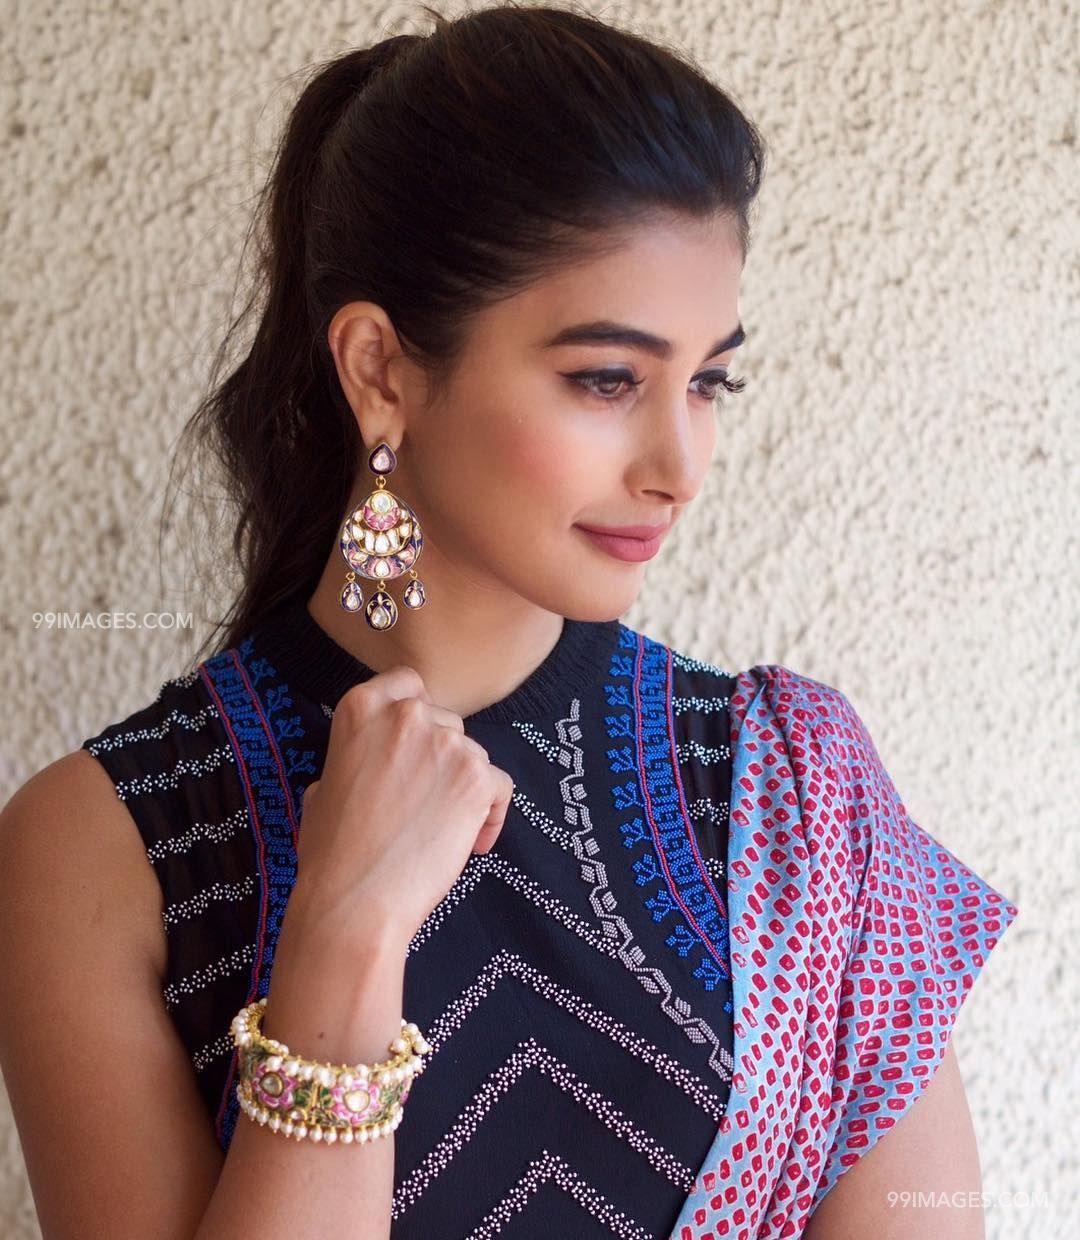 Pooja Hegde Beautiful Photos & Mobile Wallpapers HD (Android/iPhone) (1080p) (20996) - Pooja Hegde